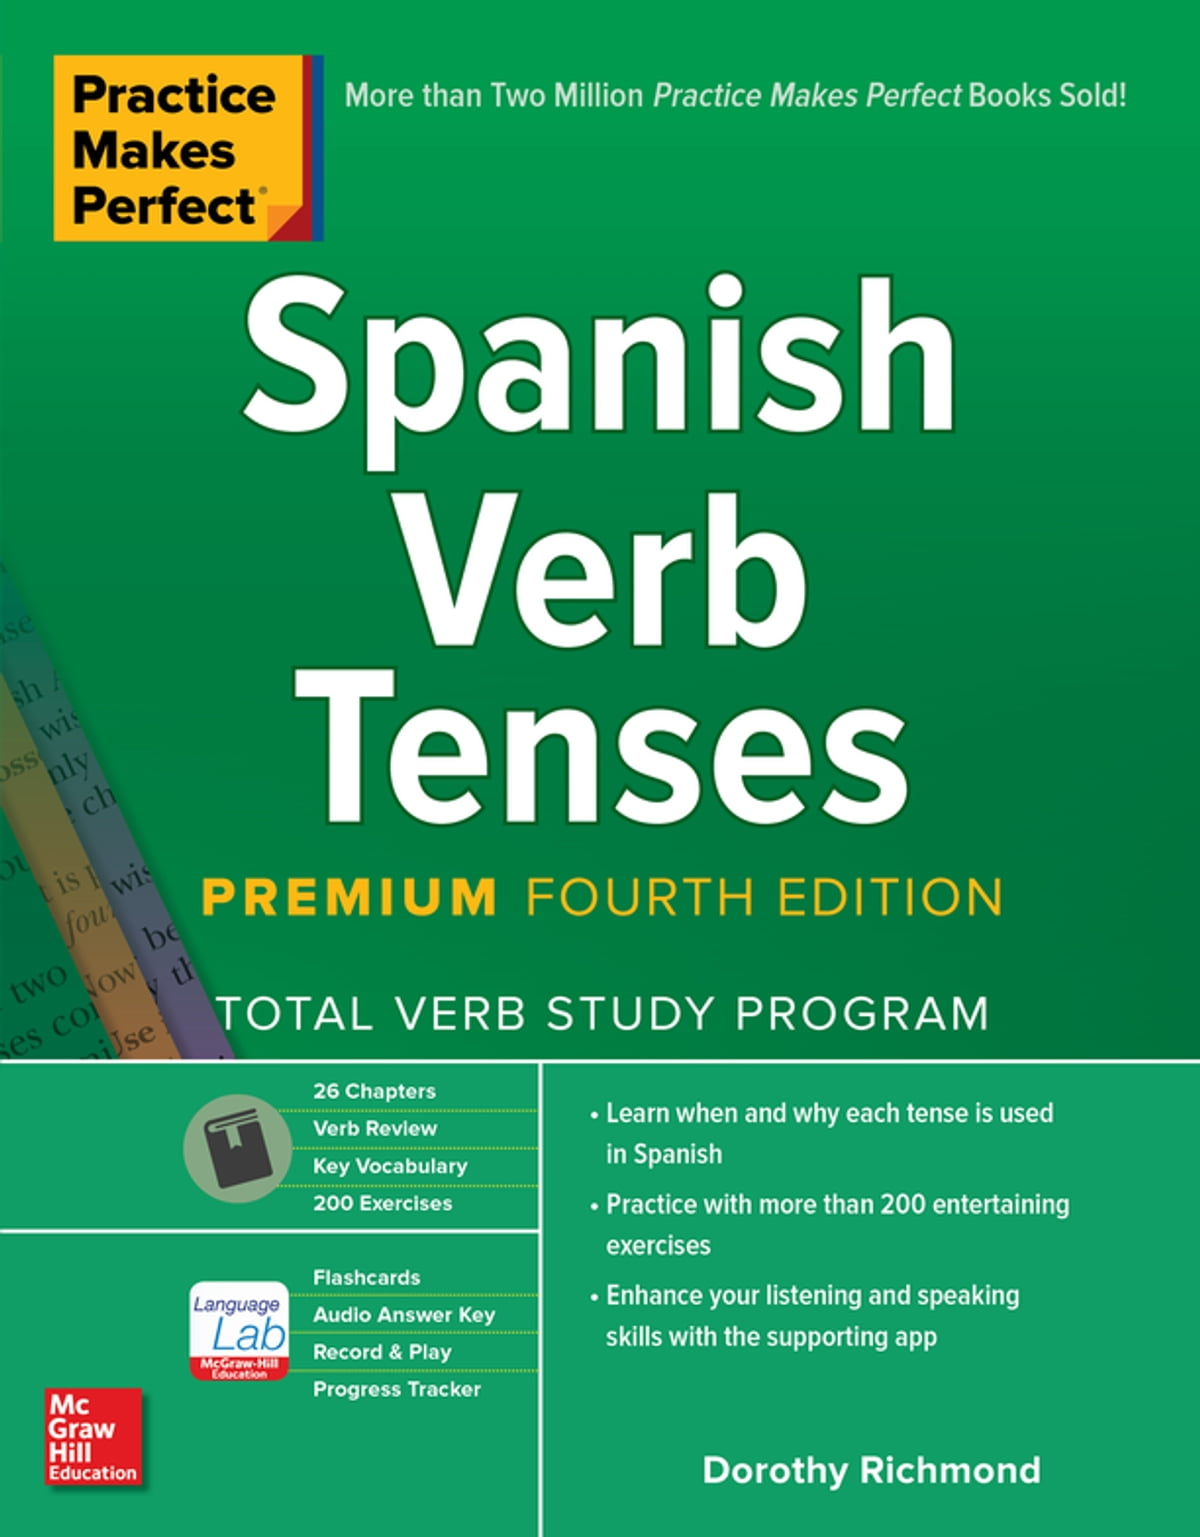 Practice Makes Perfect Spanish Verb